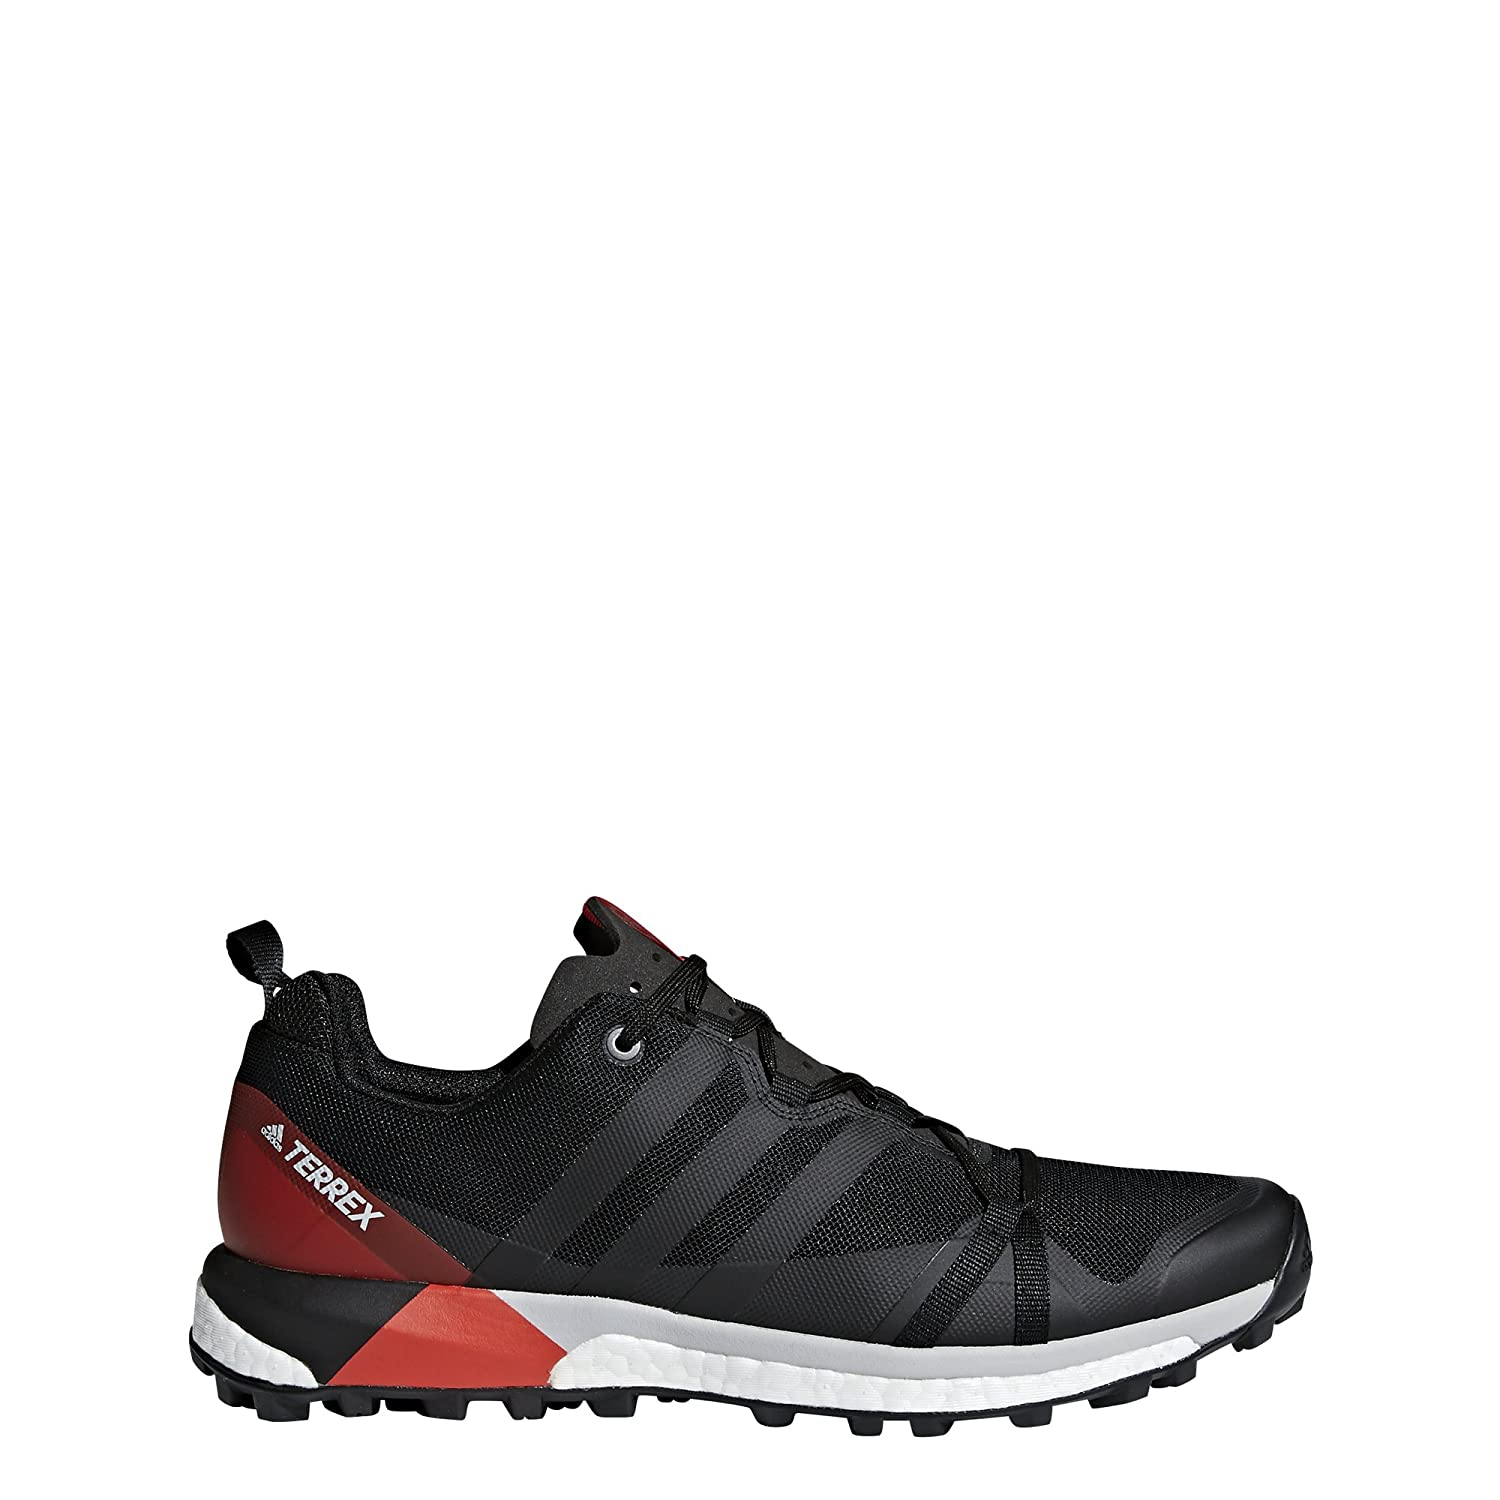 Gentlemen/Ladies adidas Men's Terrex Agravic Agravic Agravic Outdoor Shoes Complete specification a good reputation in the world leading the fashion a39406